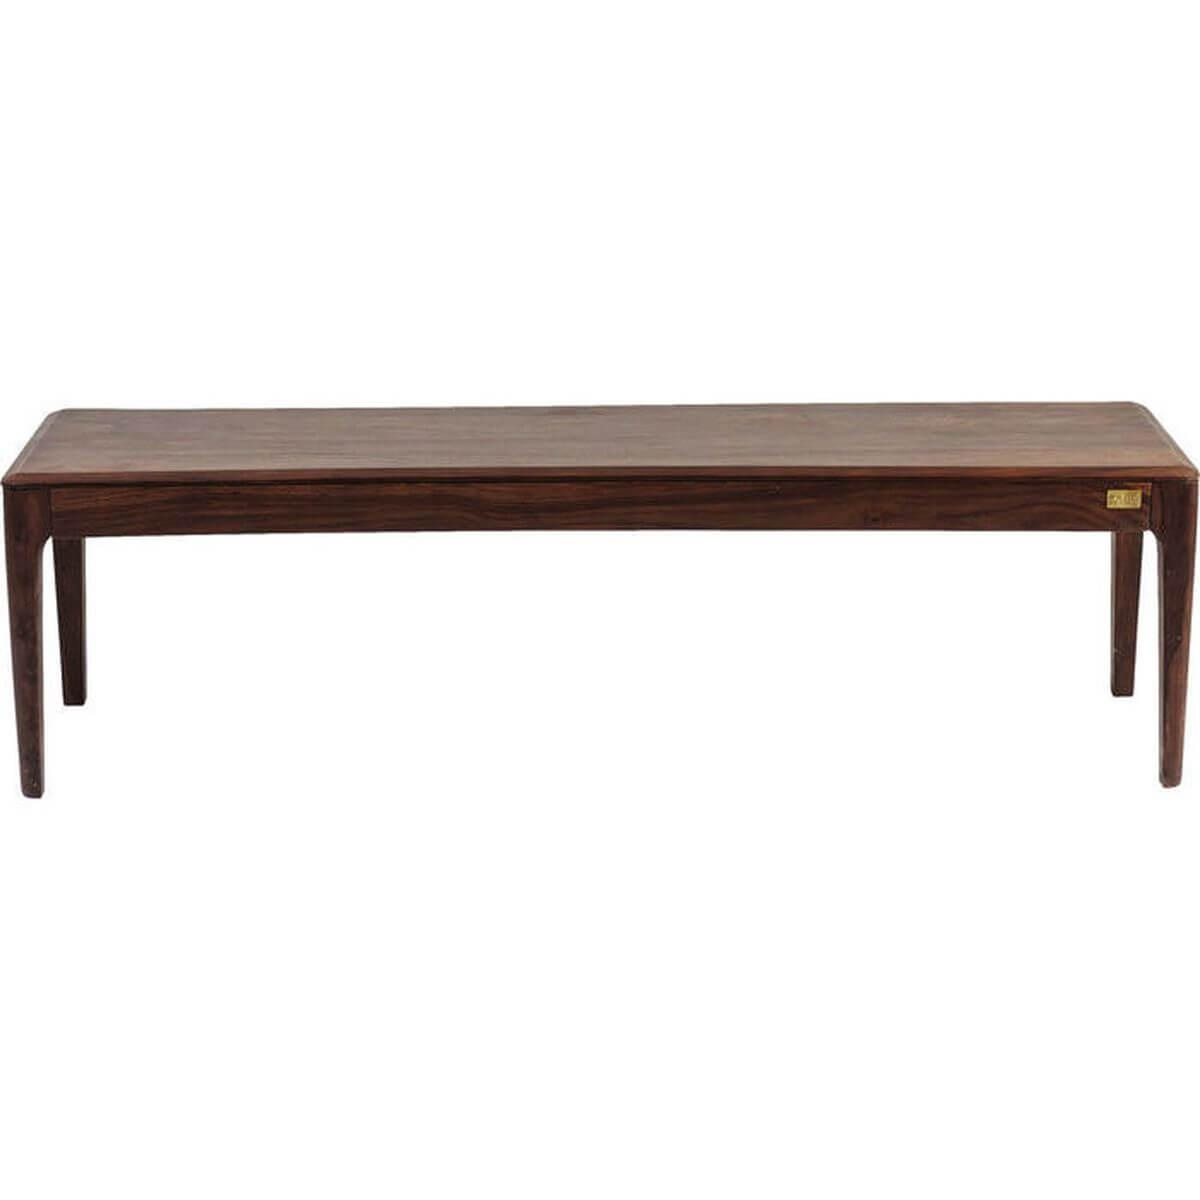 Banc Brooklyn Walnut Kare Design 160cm